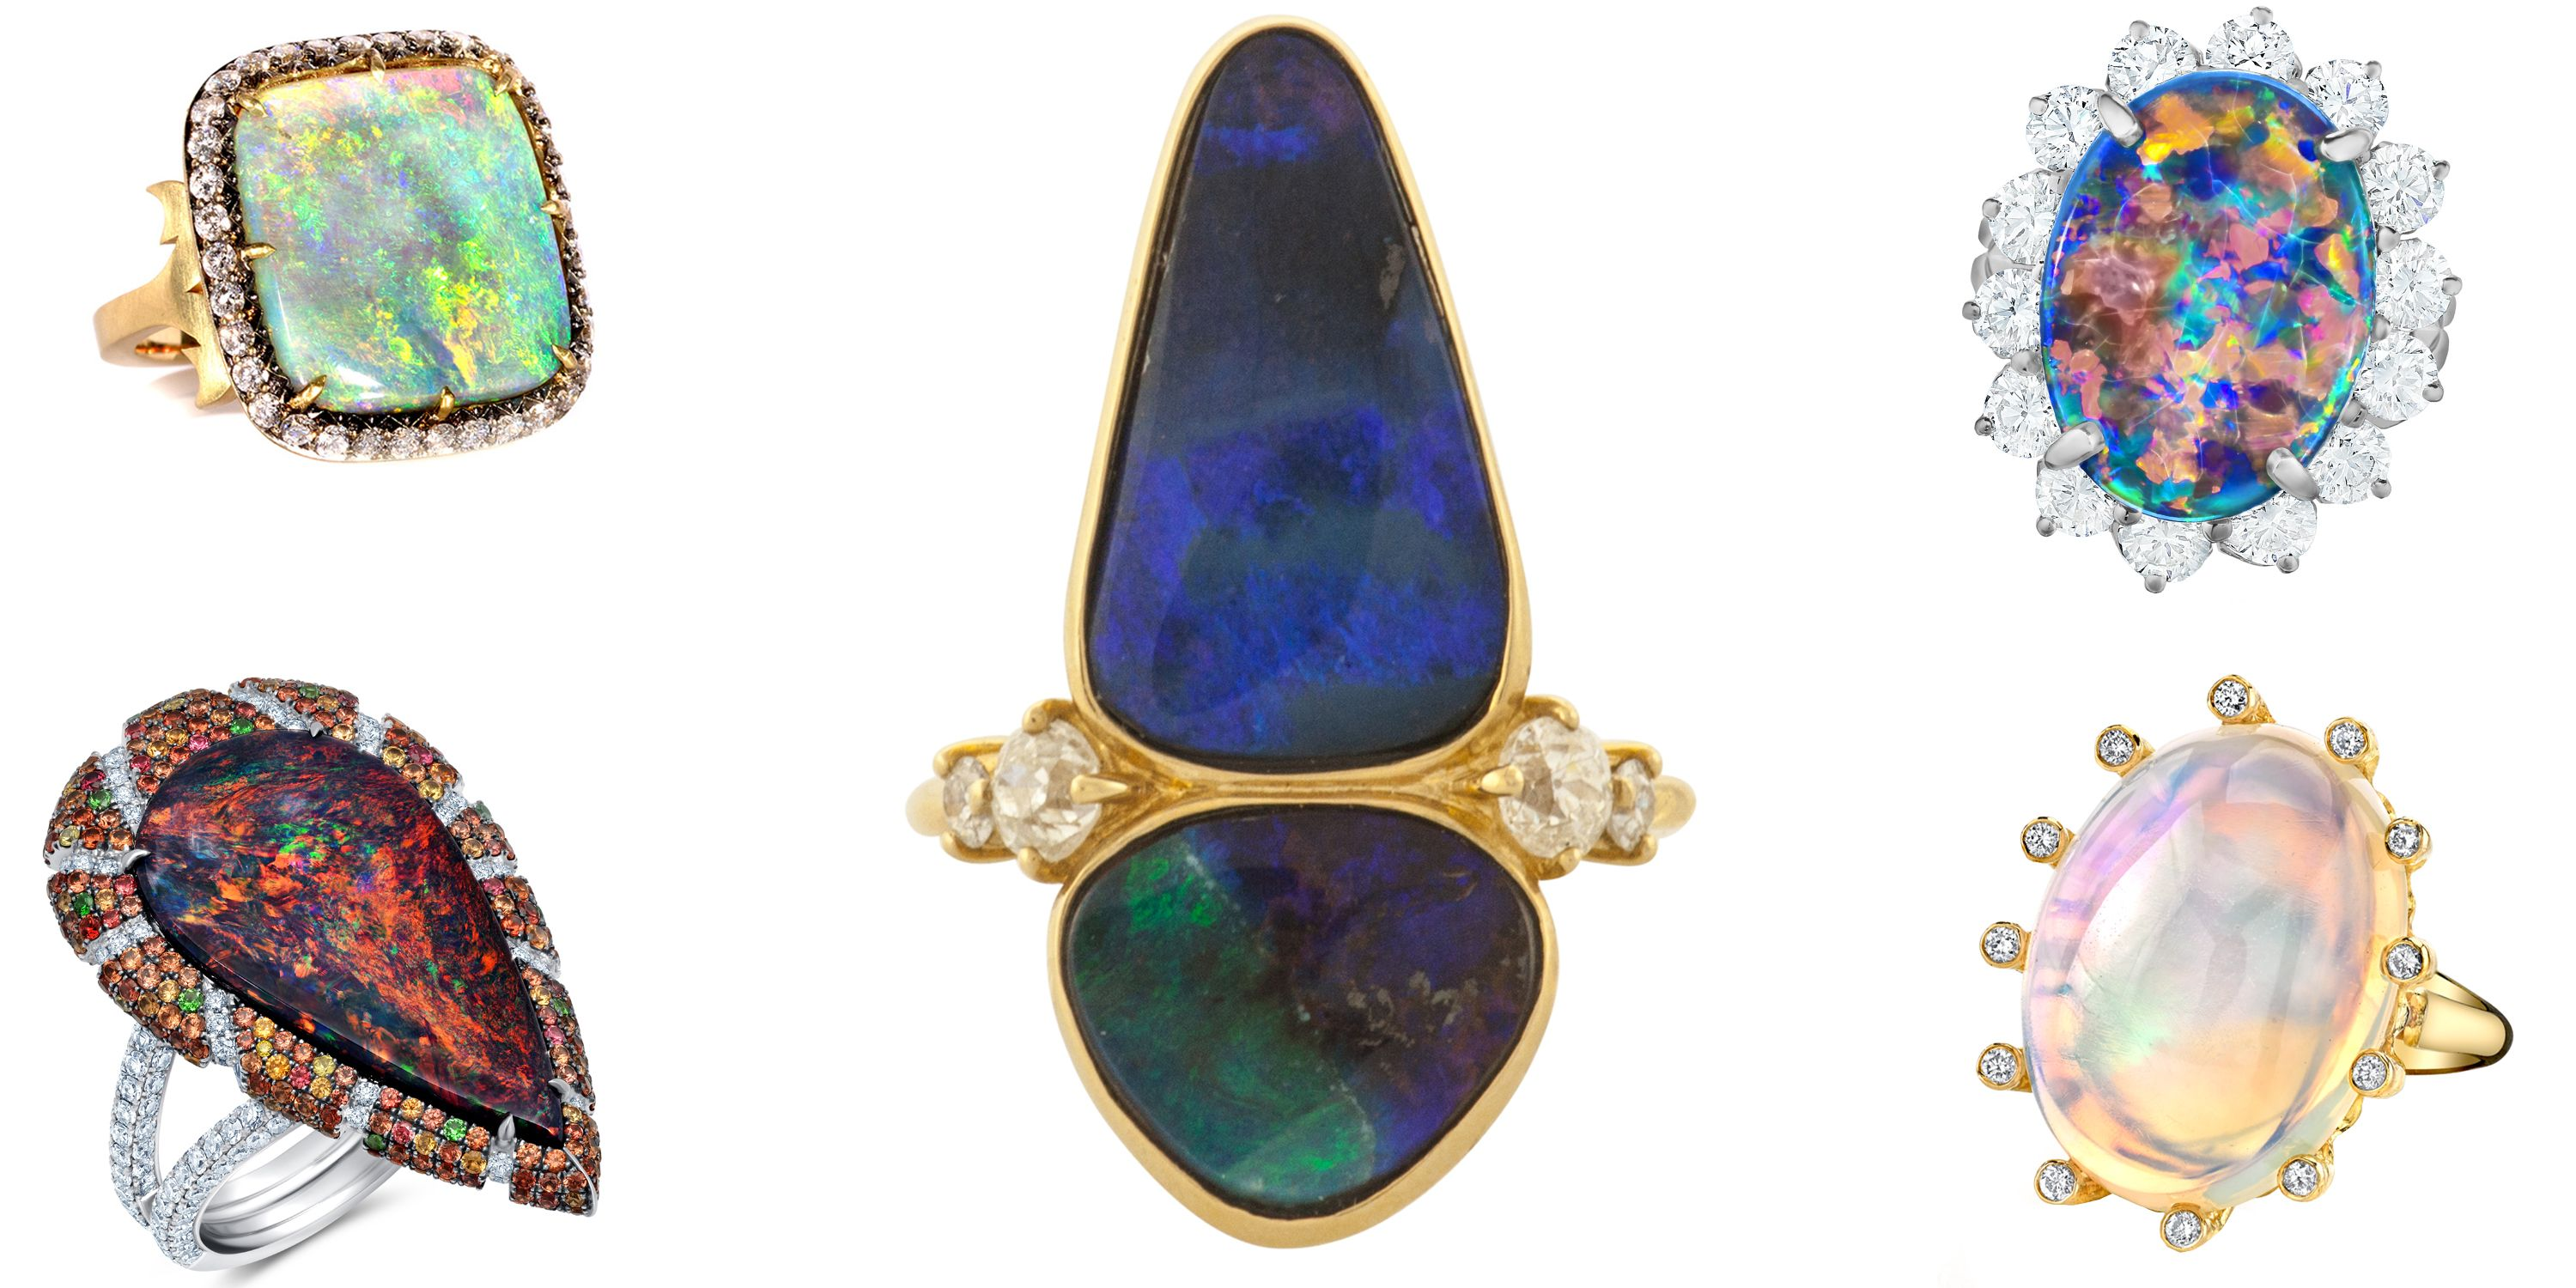 35 Opal Engagement Rings You'll Fall In Love With